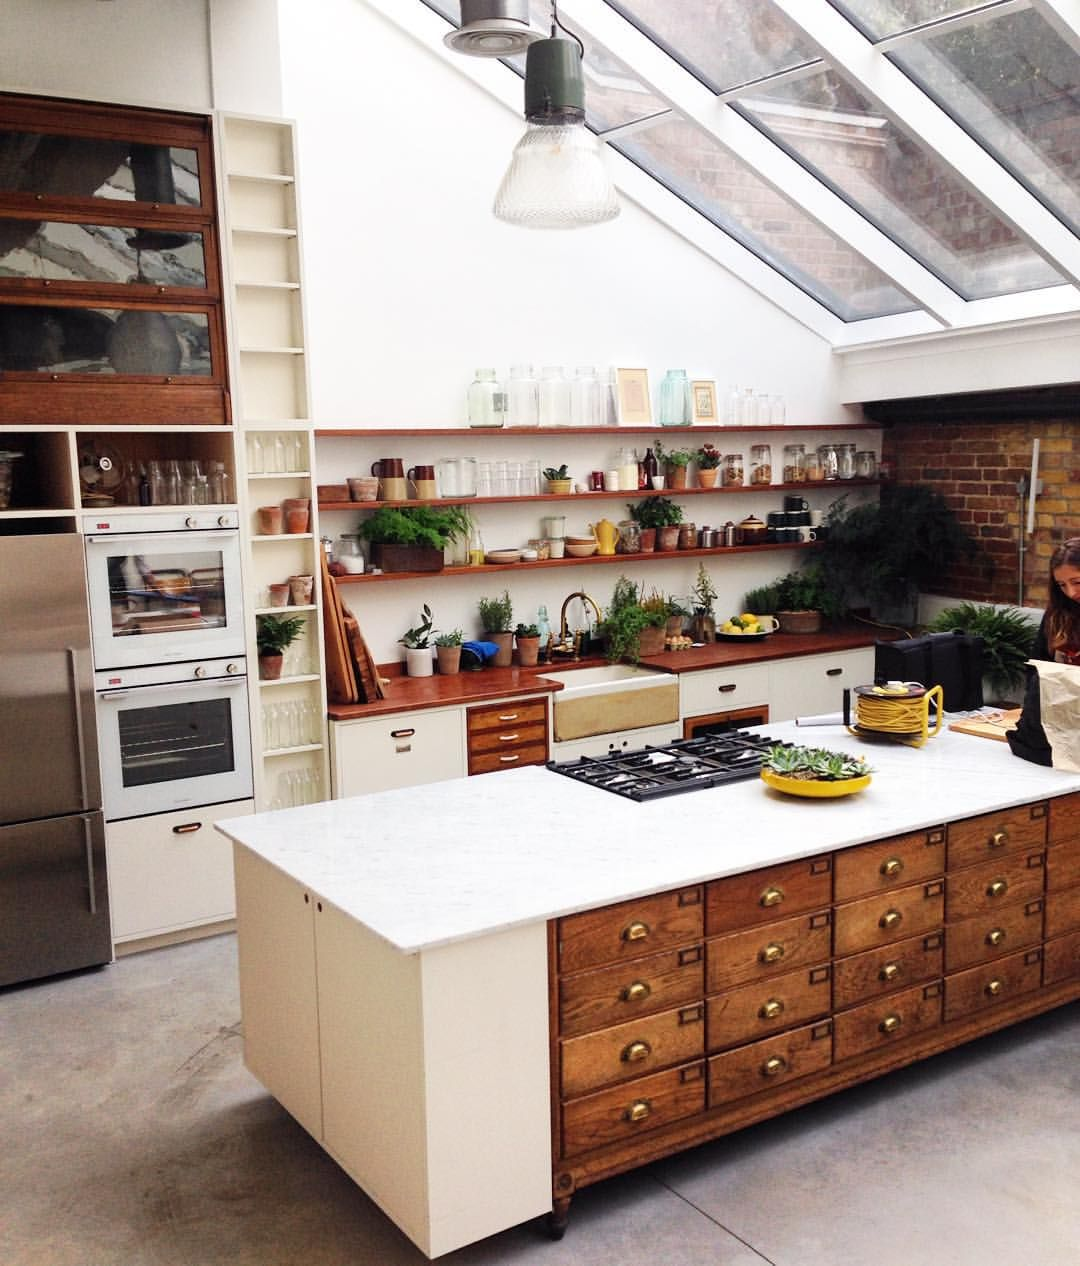 Maher Kitchen Cabinets: Kitchen Goals Right There! I've Had A Day Packed With